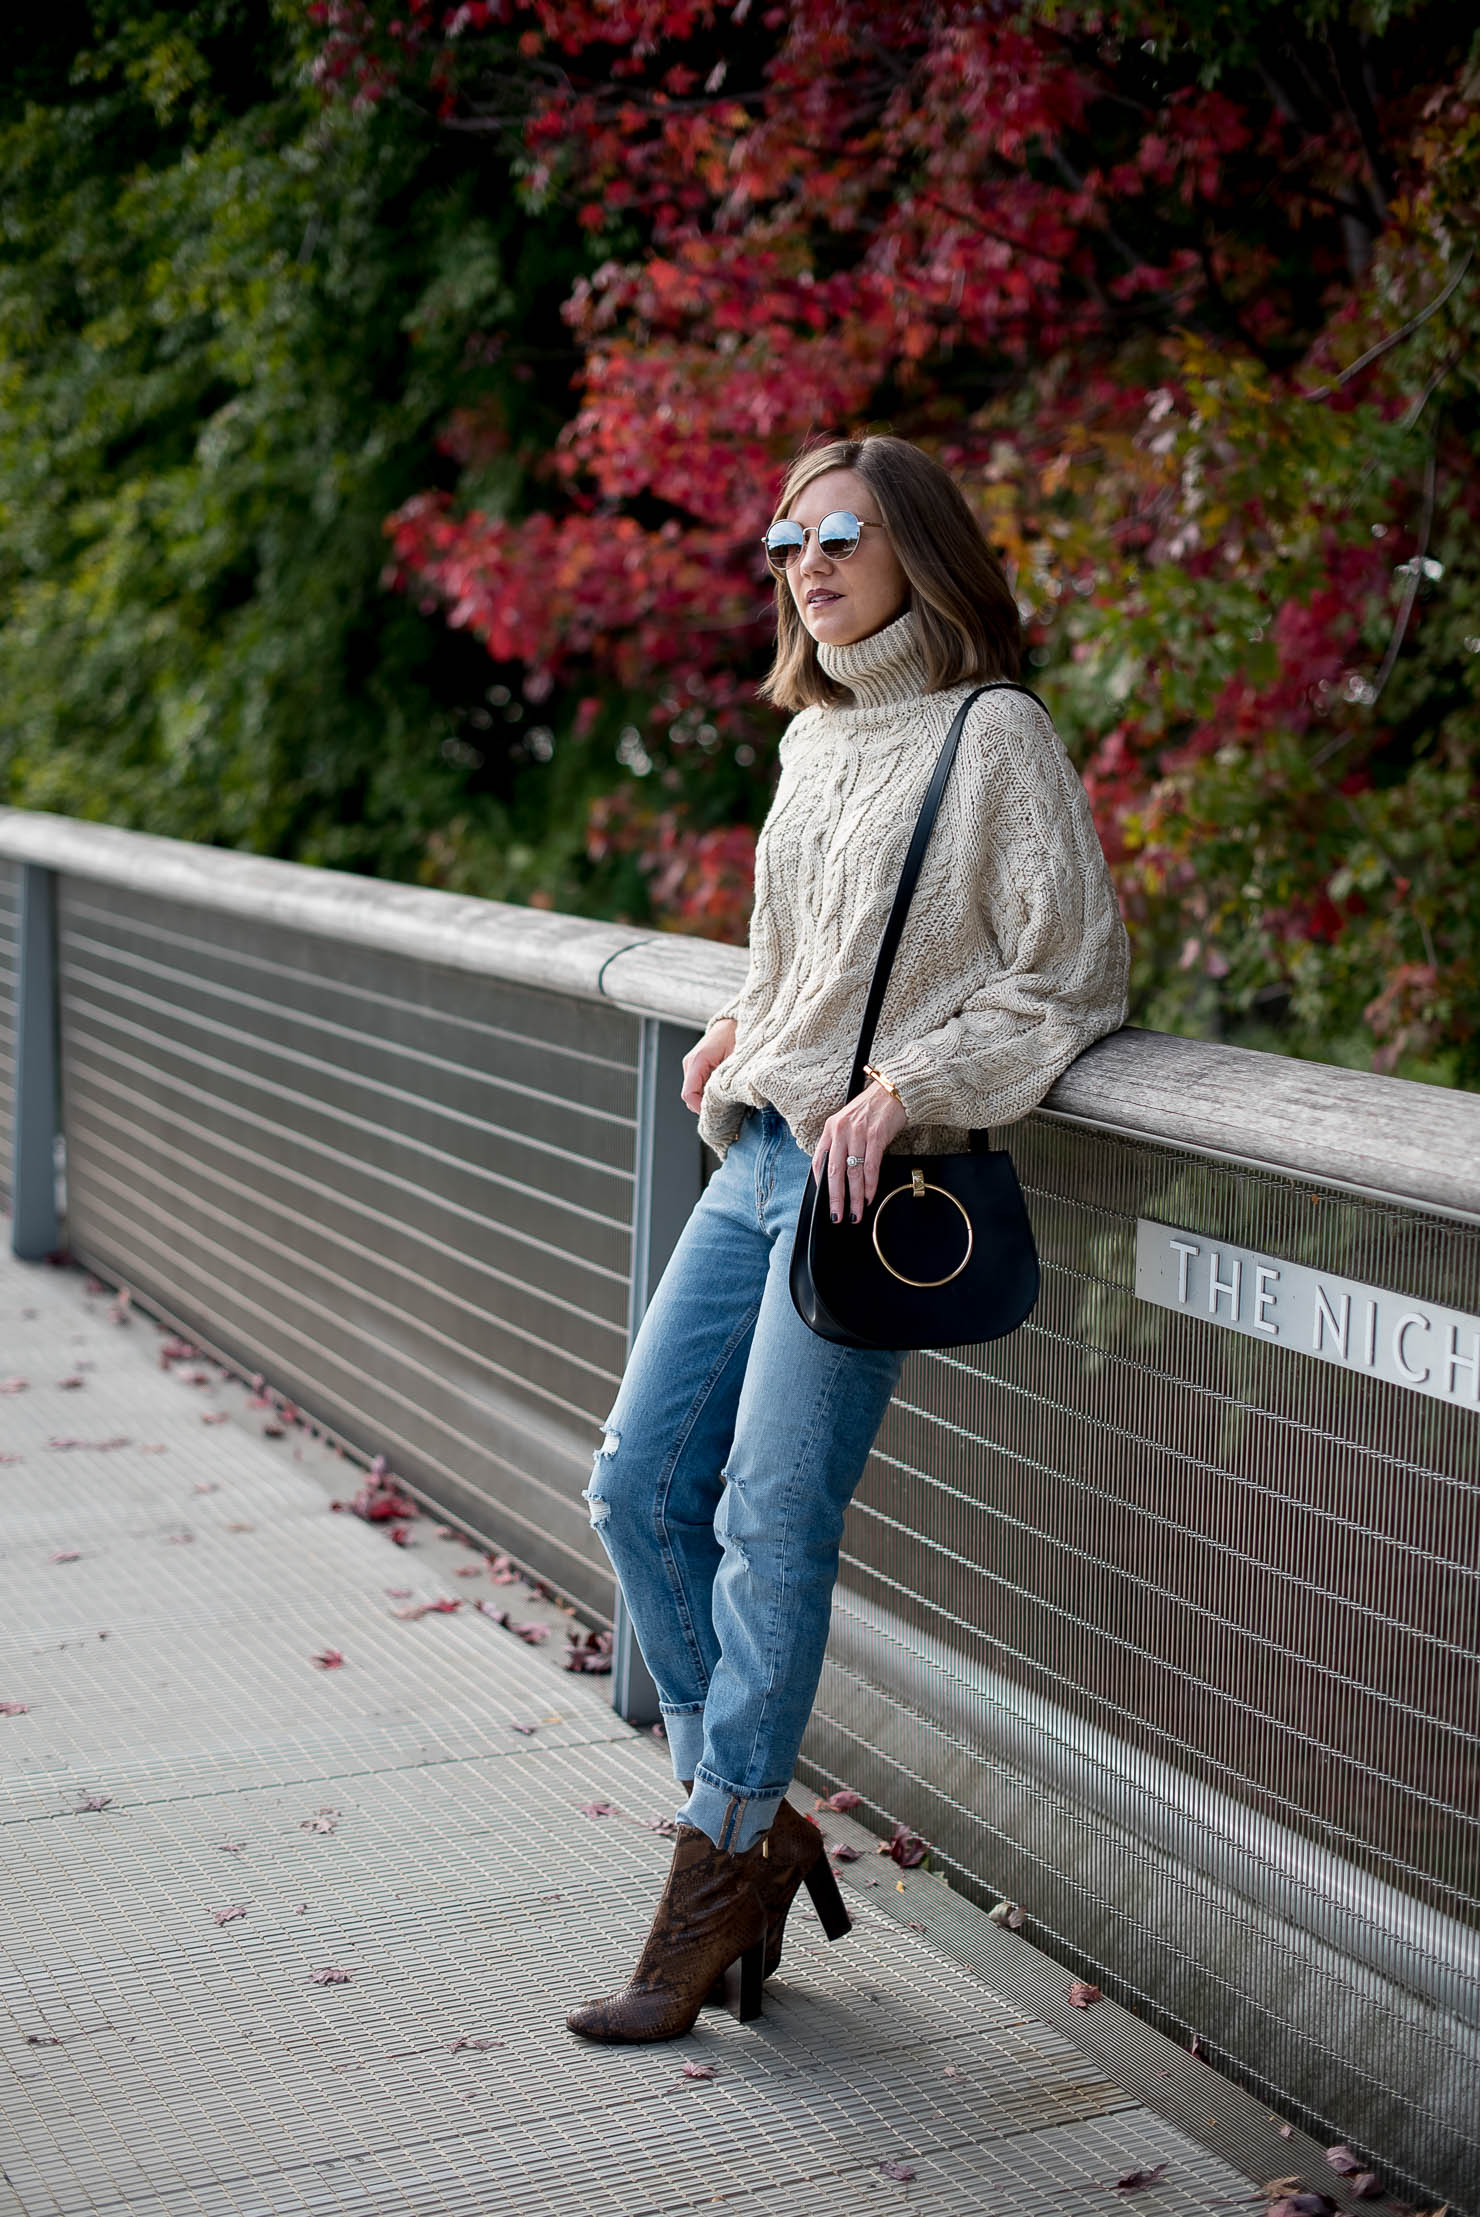 thanksgiving outfit idea fall in chicago hm cable oversized turtleneck sweater girlfriend jeans snakeskin boots how to wear over the ankle boots cozy fall style